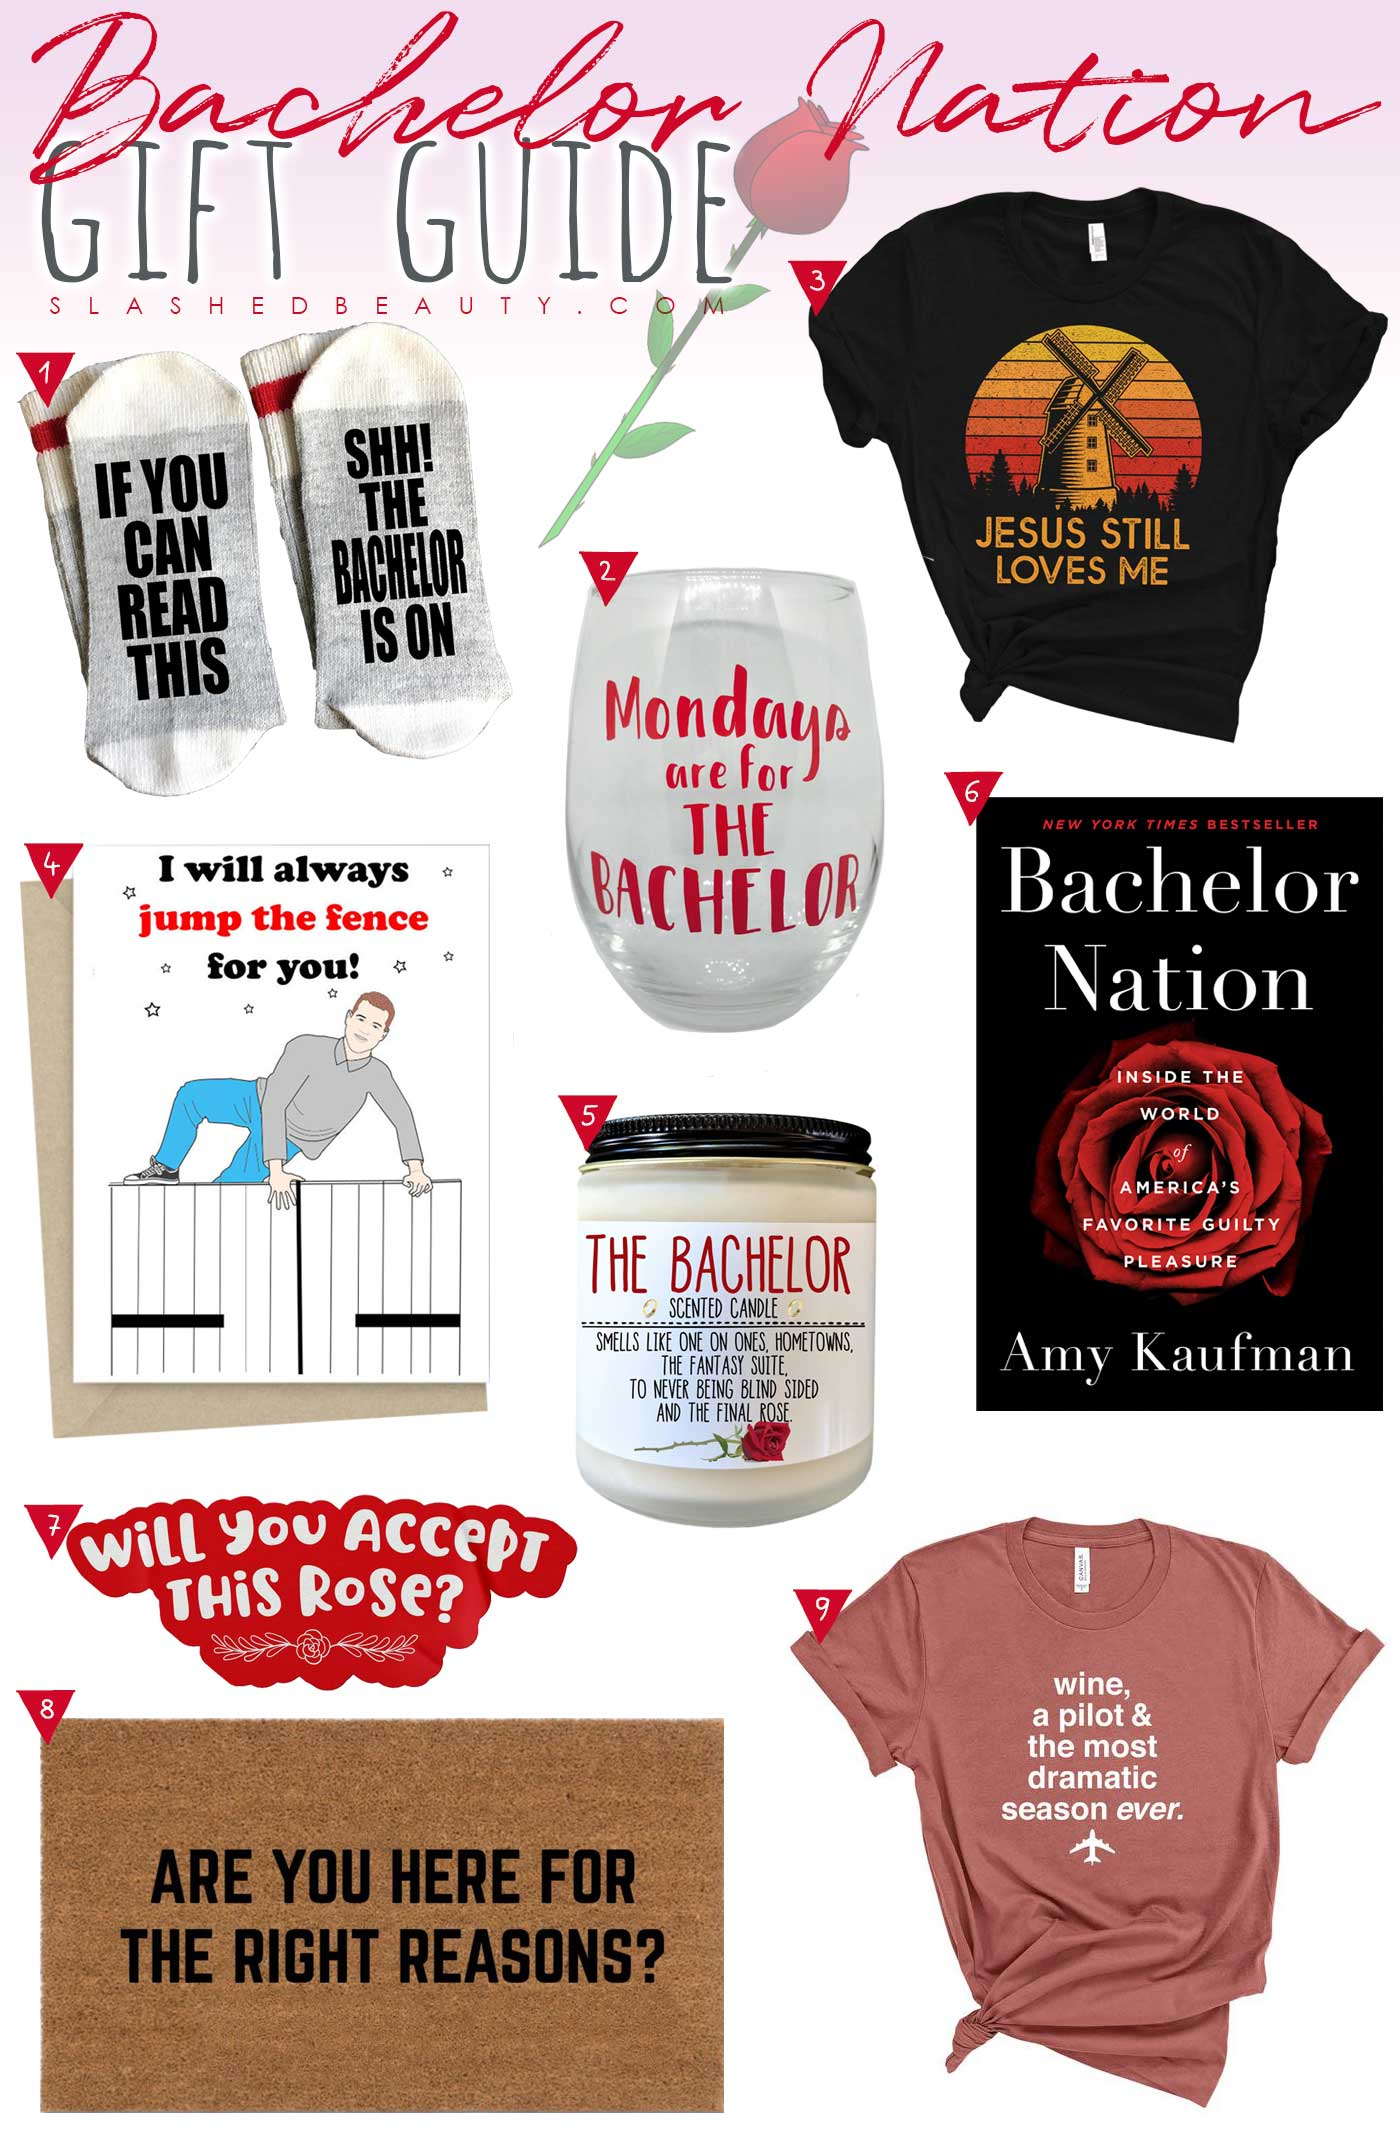 9 The Bachelor Fan Gifts for Valentine's Day | Bachelor Nation Gift Guide | Slashed Beauty